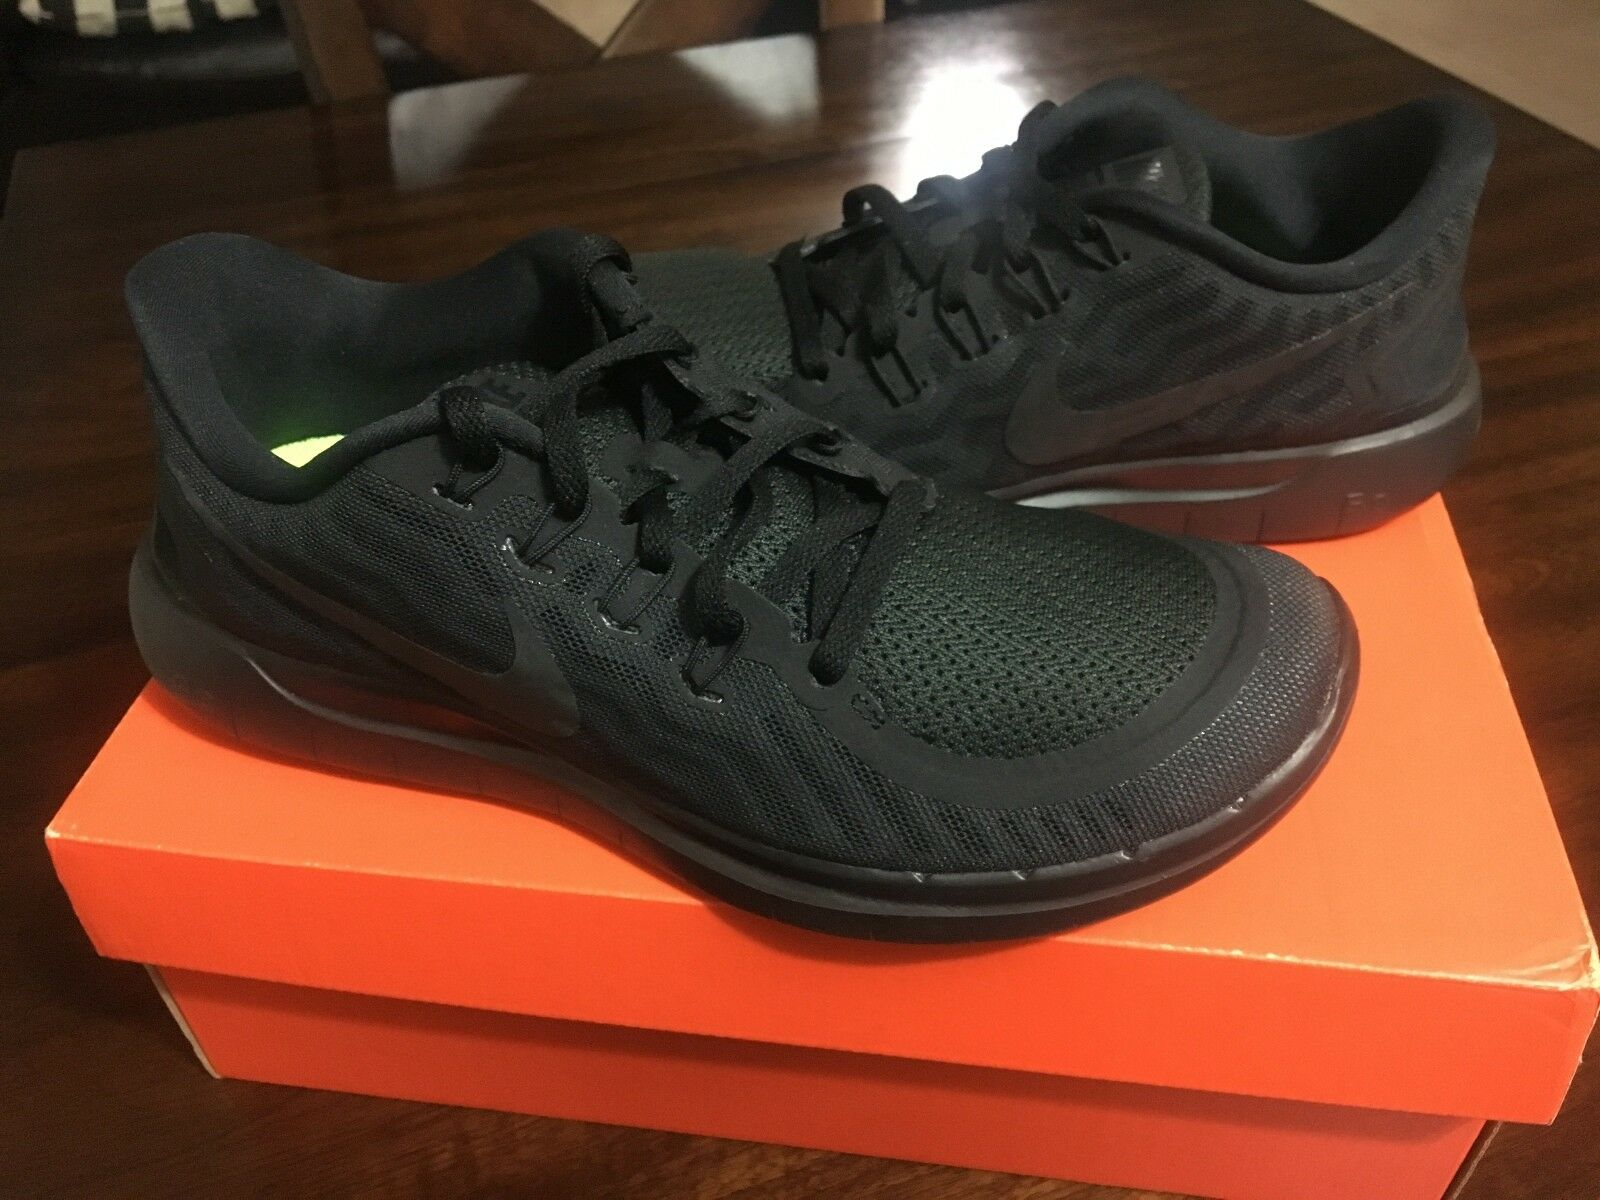 New Nike chaussures homme Free 5.0 fonctionnement chaussures Nike noir Out 724382-001 33f429